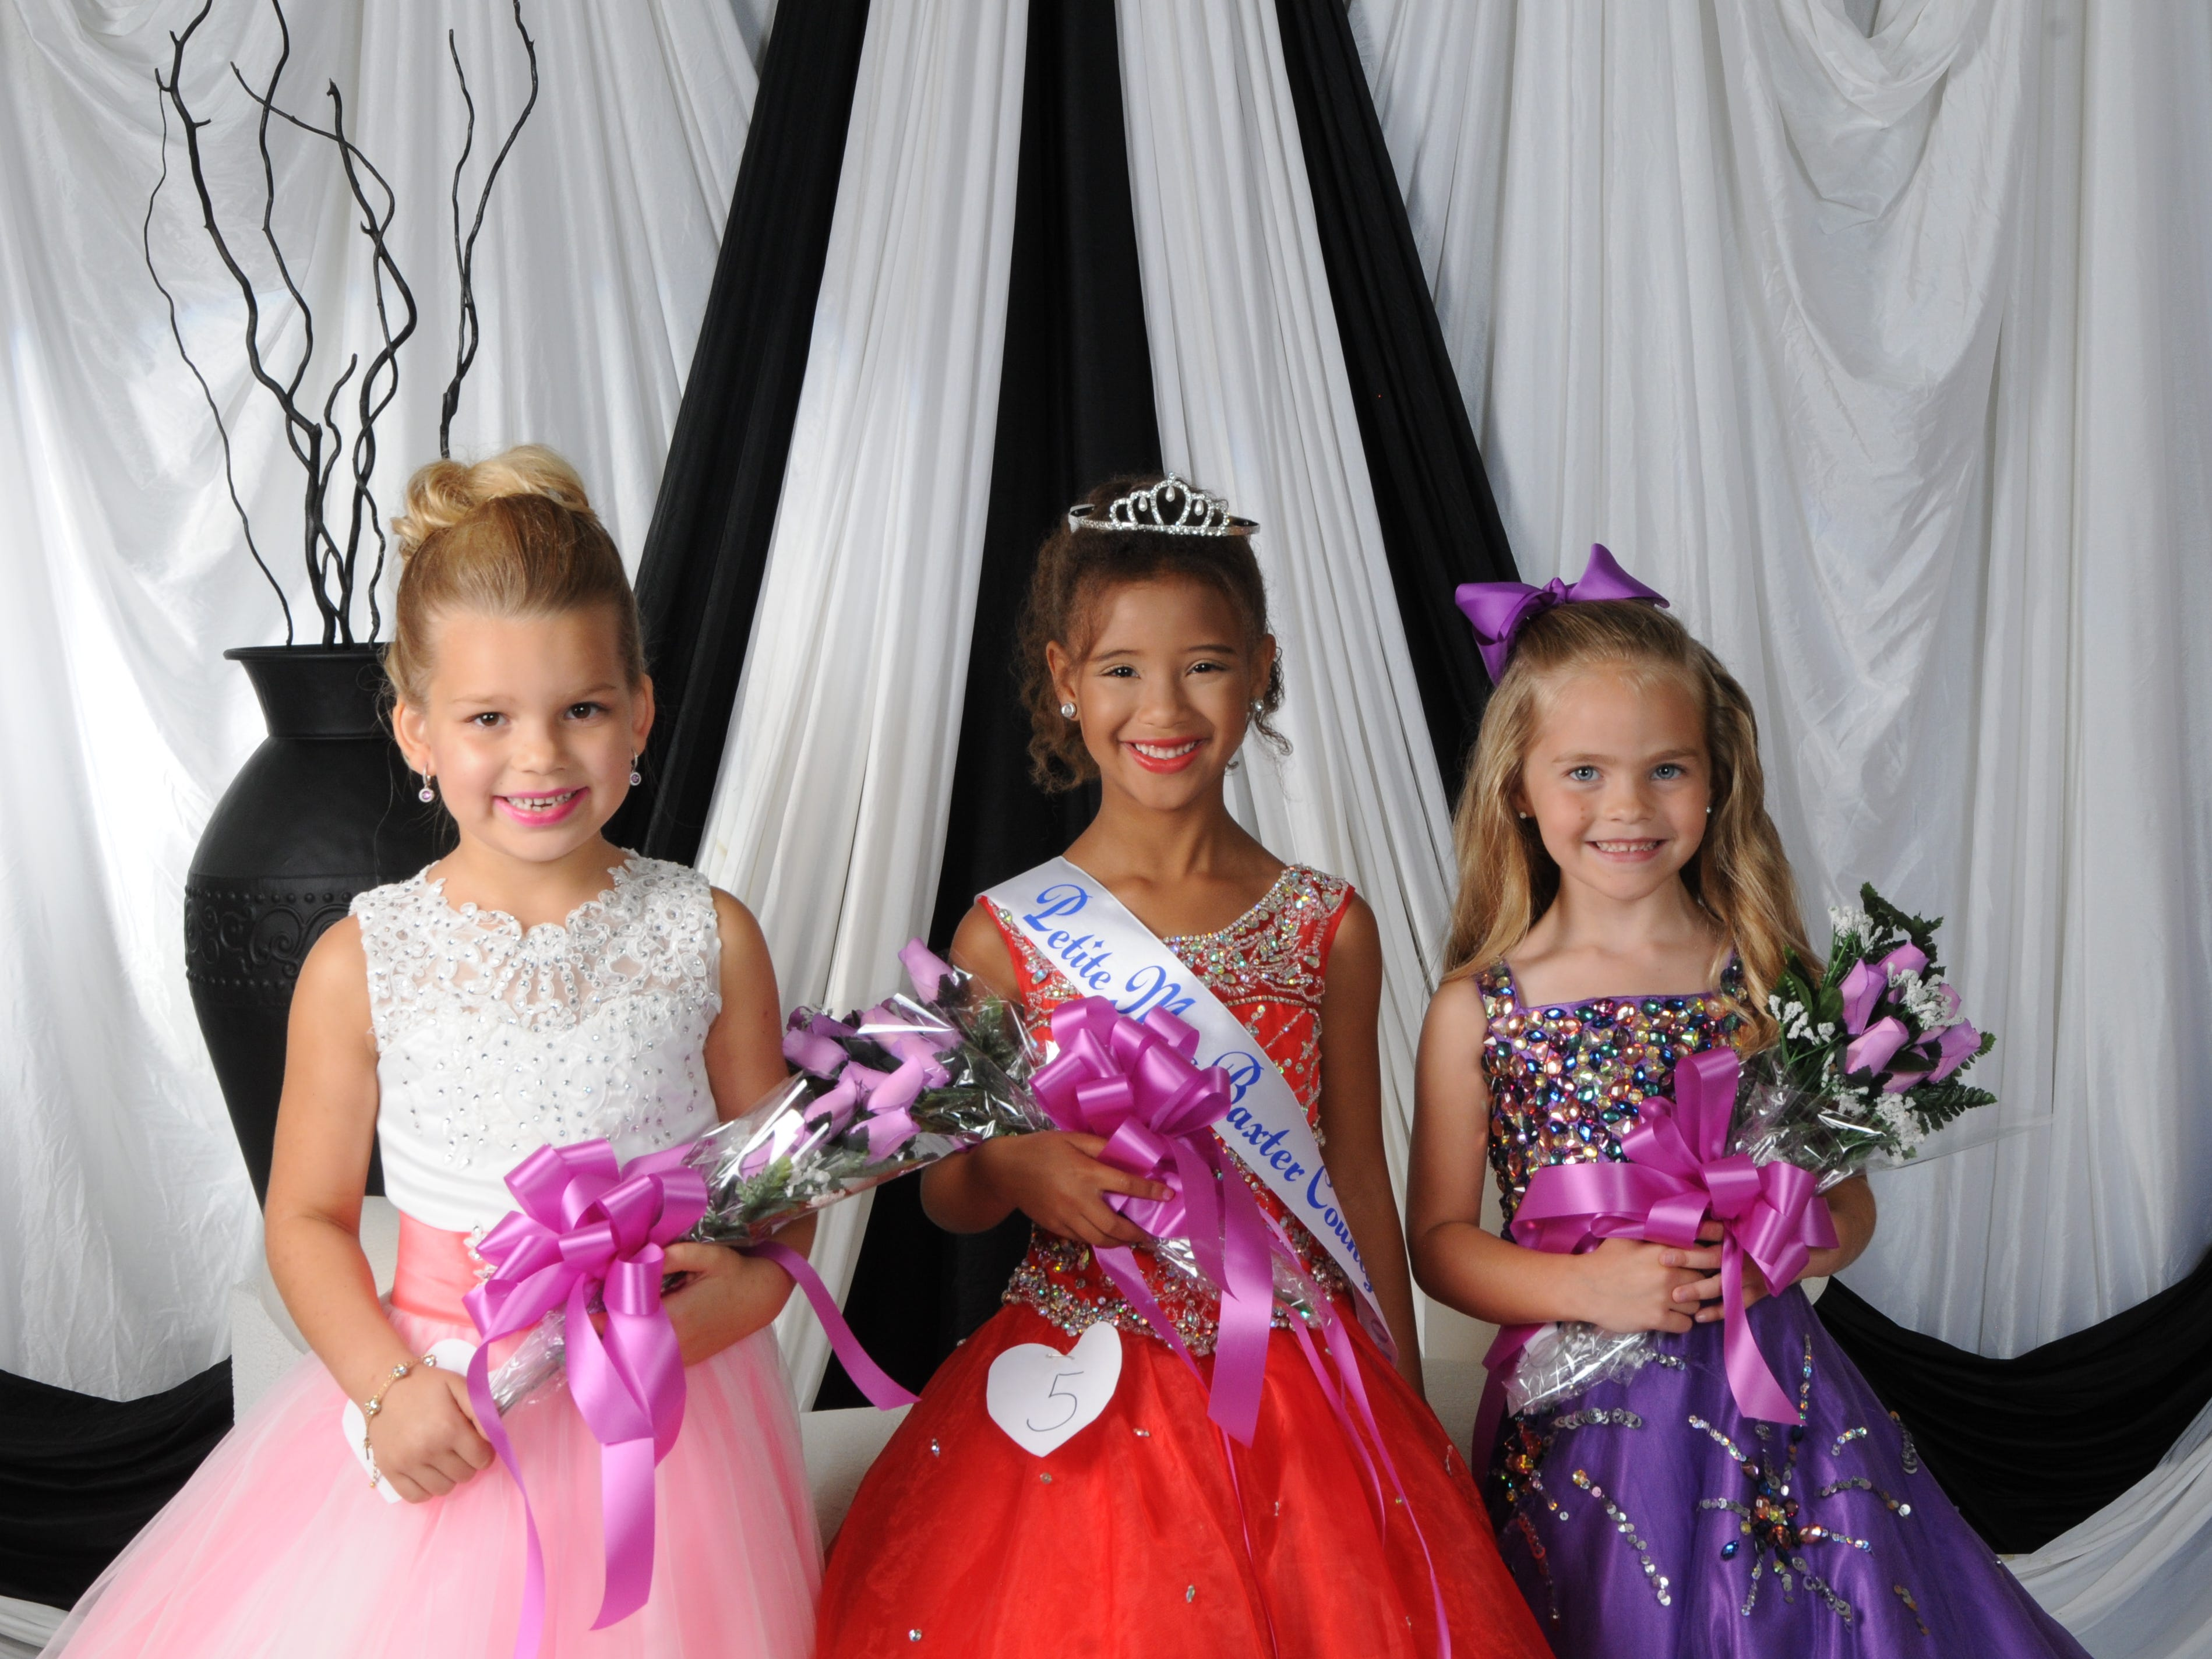 Samira Gassama (center), daughter of Travis and Stephonie Ifland of Mountain Home, was named Petite Miss Baxter County at the annual Baxter County Fair Pageant on Saturday at Dunbar Auditorium. Rylee Jones (right), daughter of Wesley and Angelica Jones of Mountain Home, was named first alternate; Heleyna Koenen (left), daughter of Jacob and Constance Koenen of Mountain Home, was named second alternate; and Zoey Kaye (not pictured), daughter of Stephanie and Luke Spence of Mountain Home and Ryan and Chelsea Kaye of Mountain Home, was named the People's Choice winner.